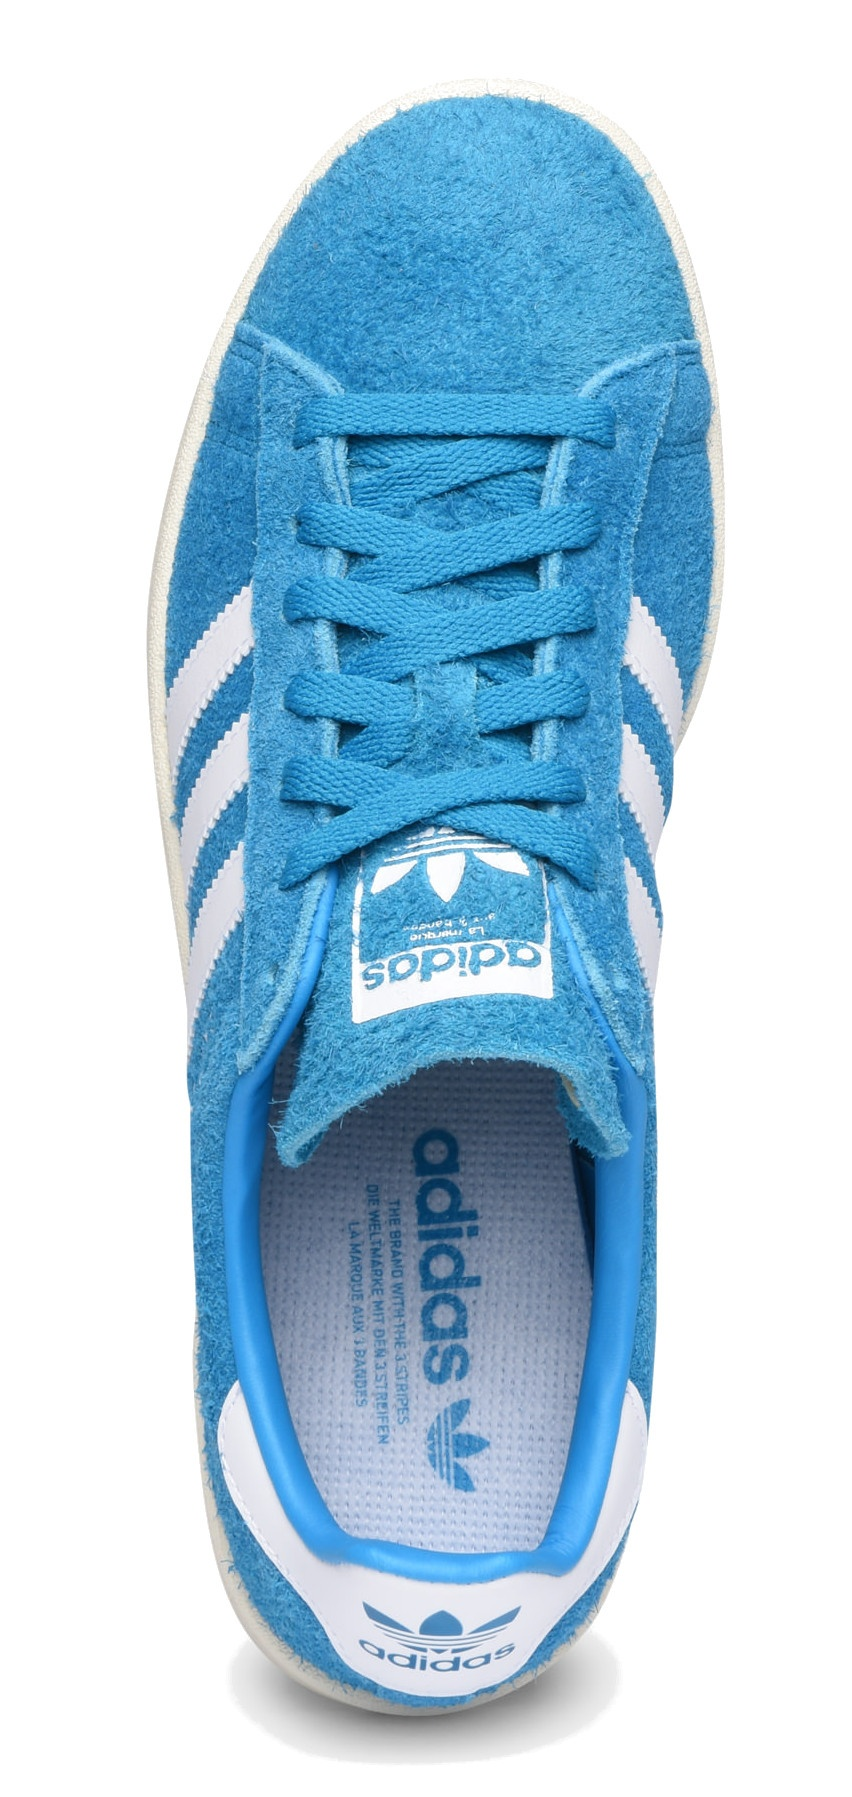 3ff65a9a4c9 adidas sneakers Campus heren blauw - Internet-Sport&Casuals